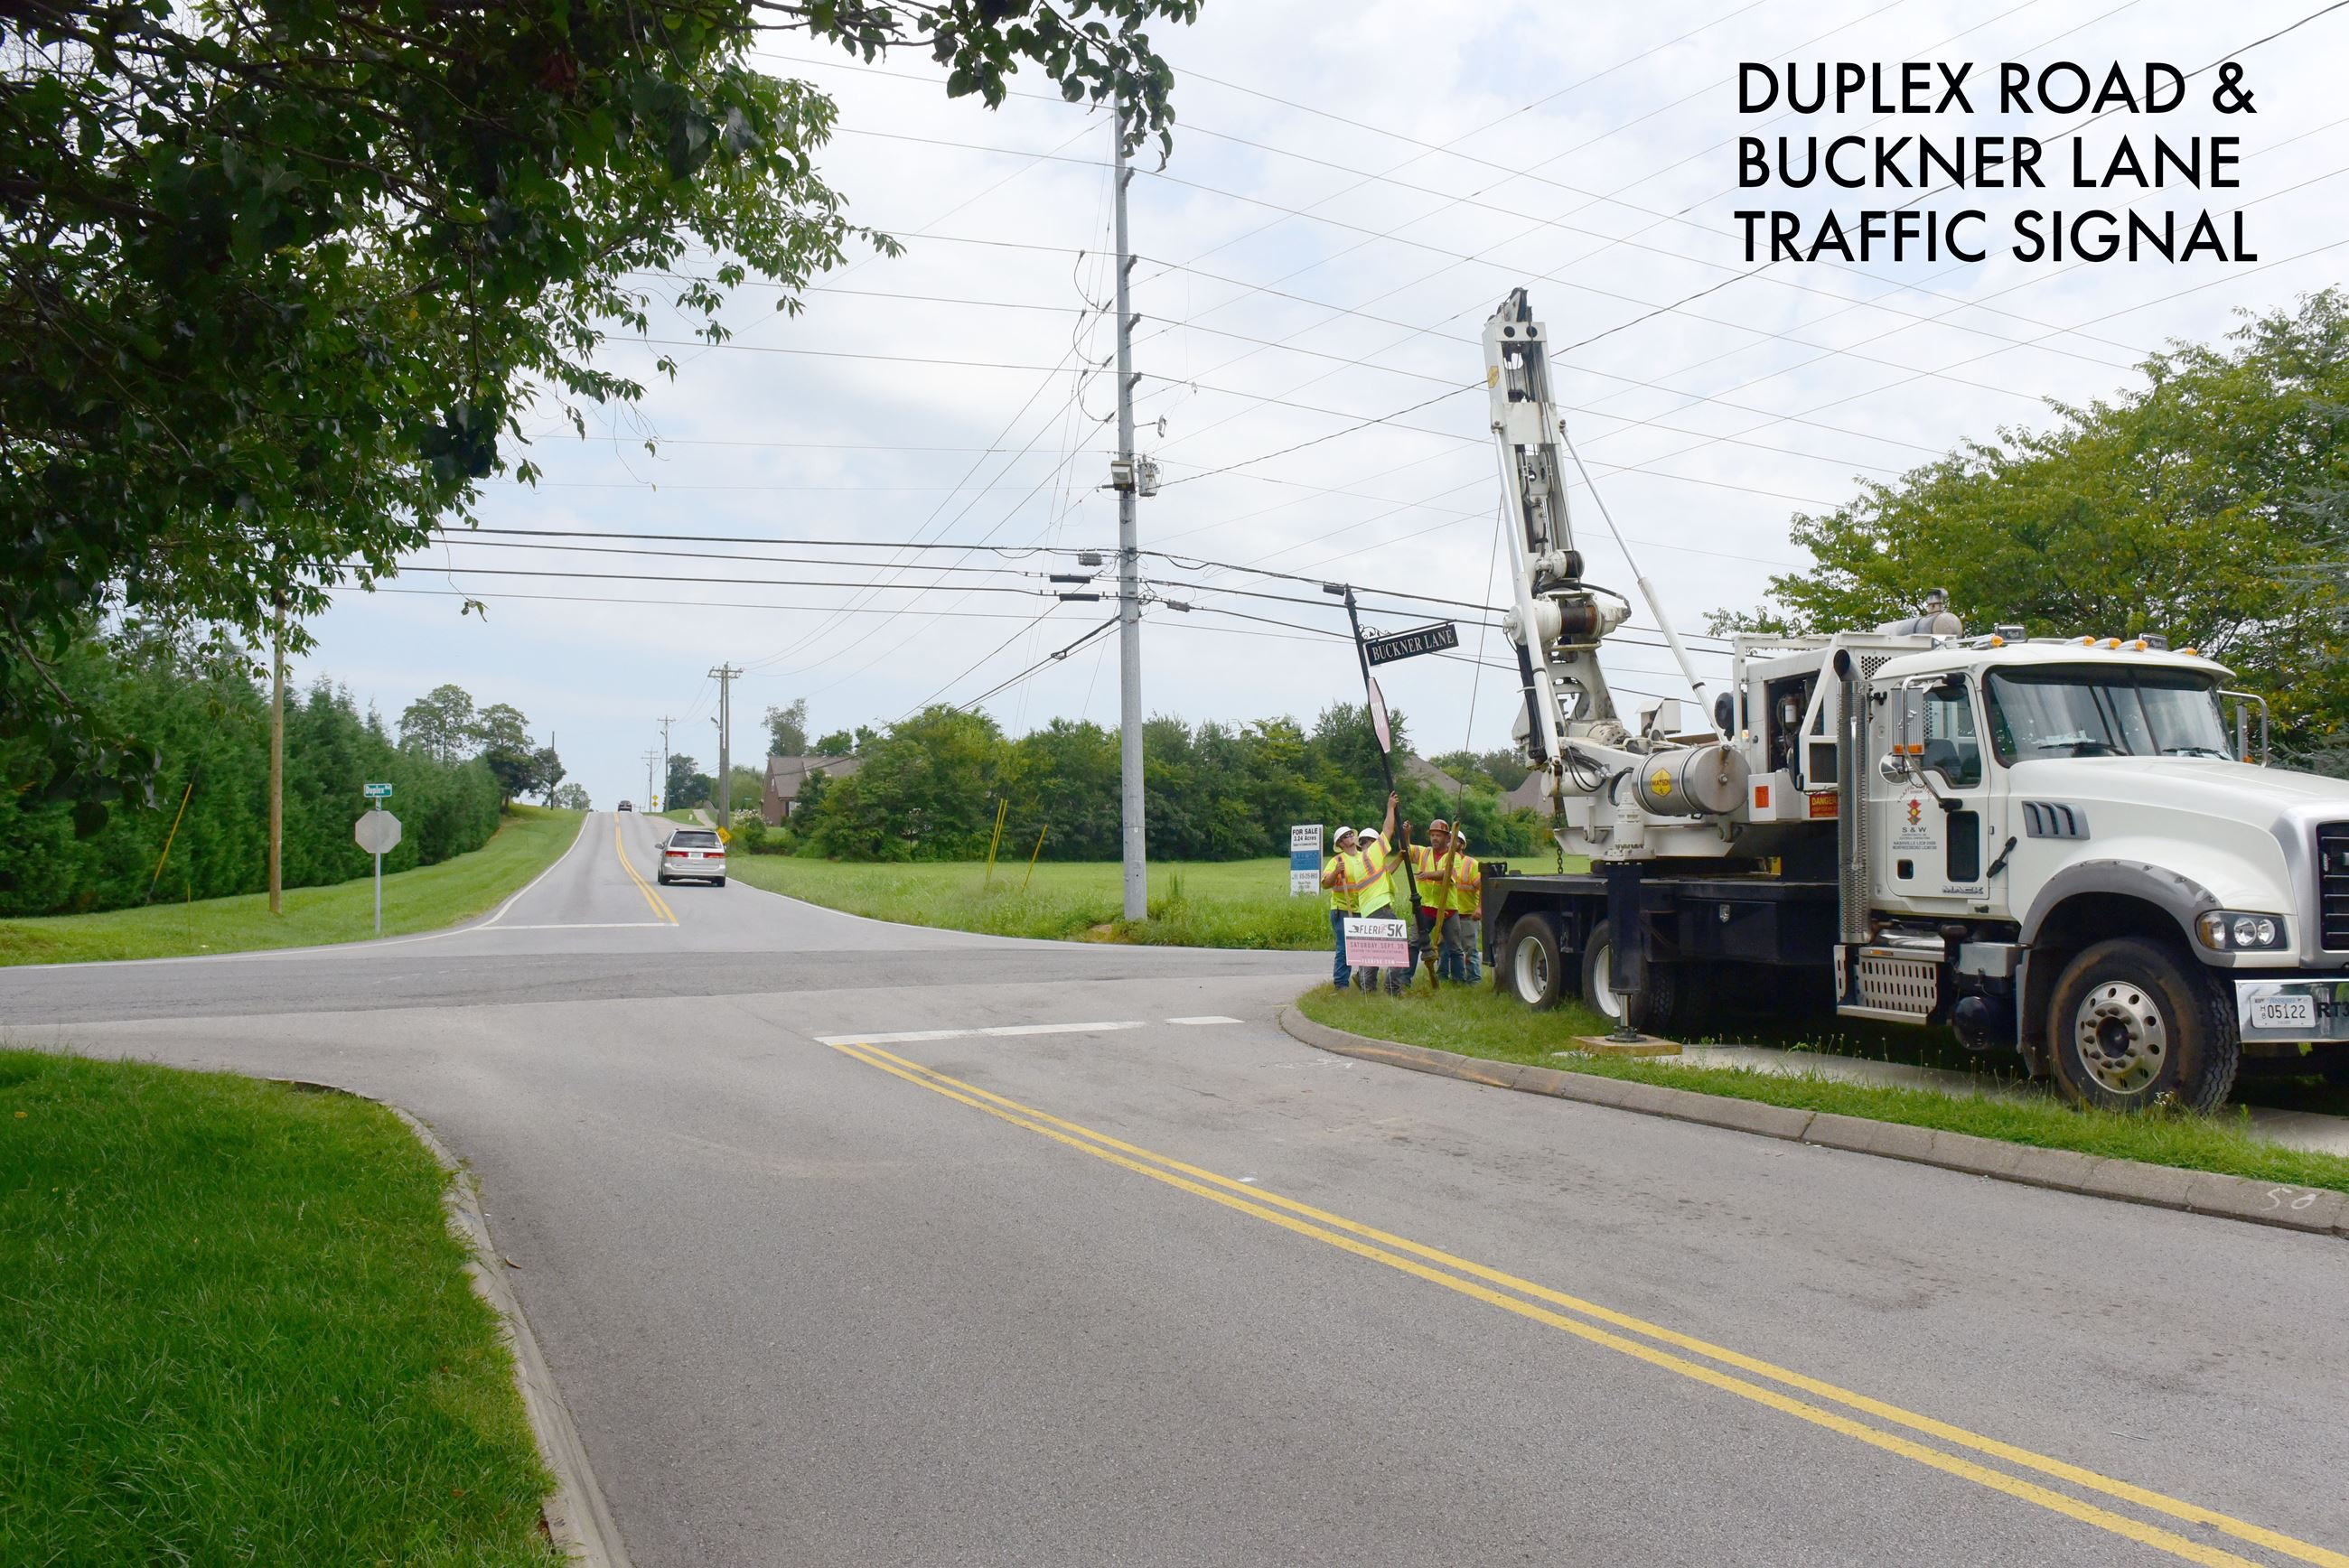 Duplex Road and Buckner Lane traffic signal